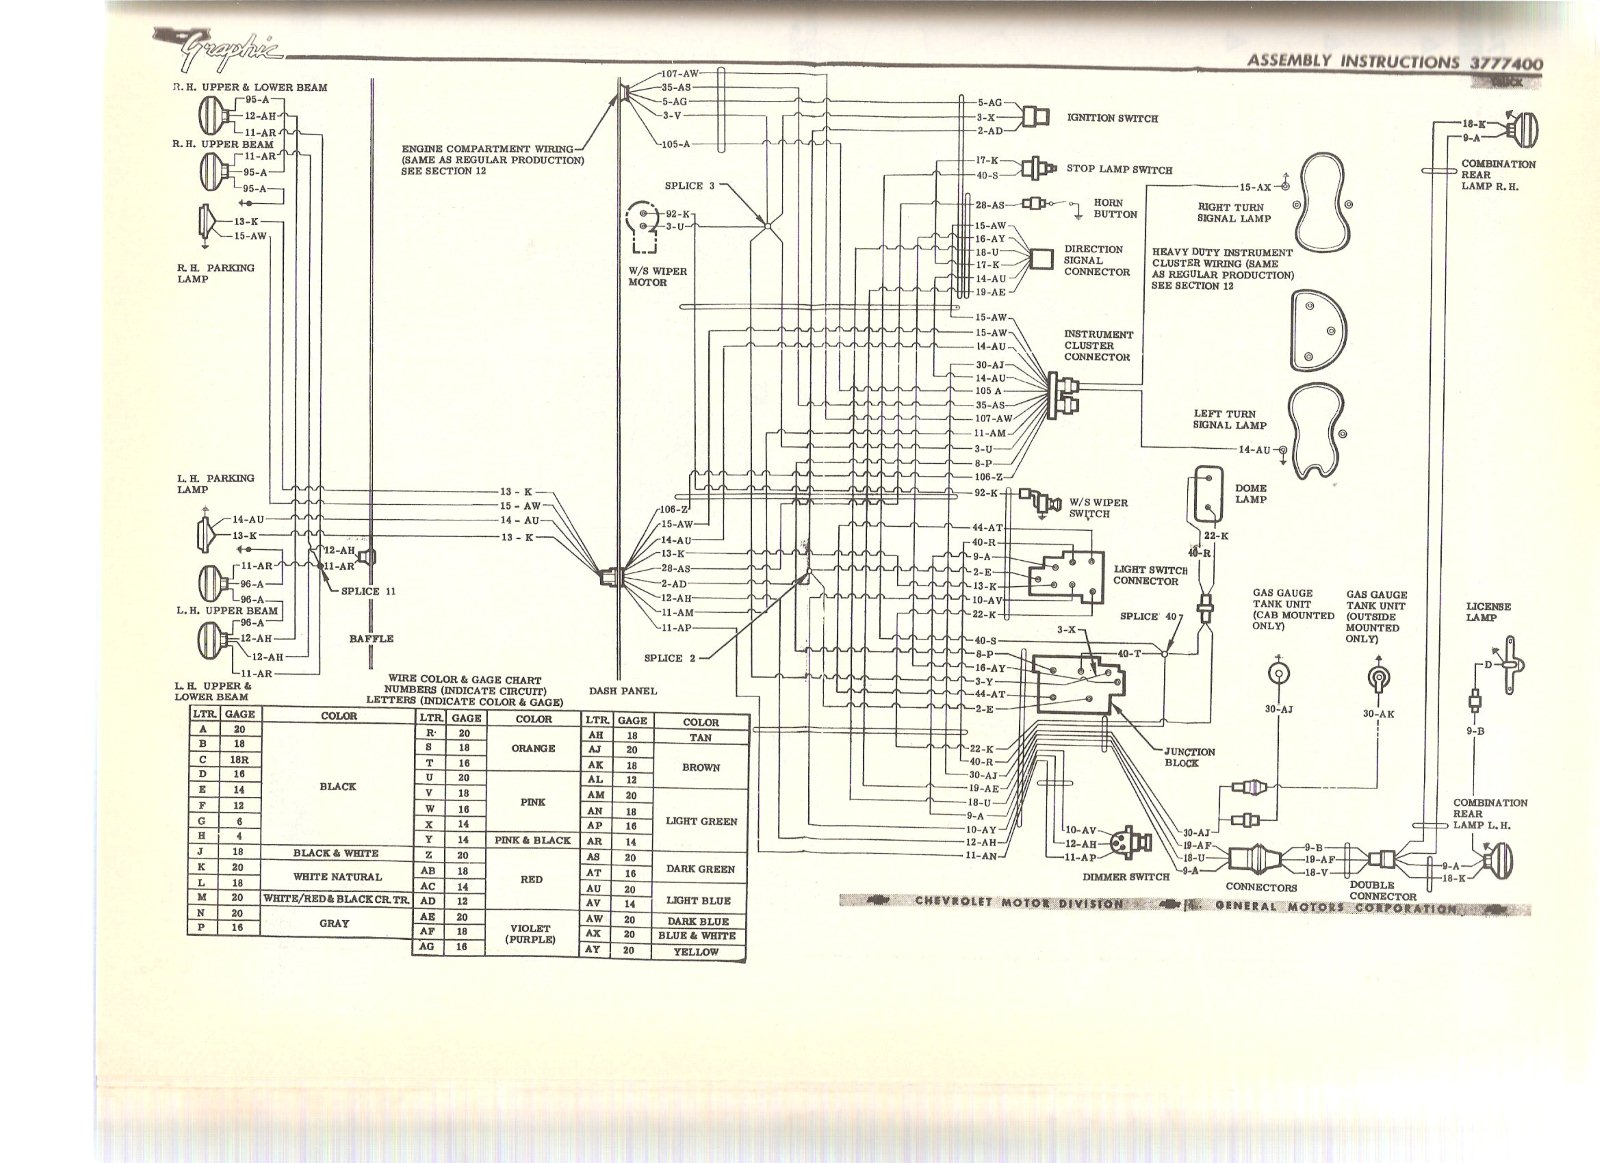 1967 Firebird Wiring Diagram Photo Album Diagrams